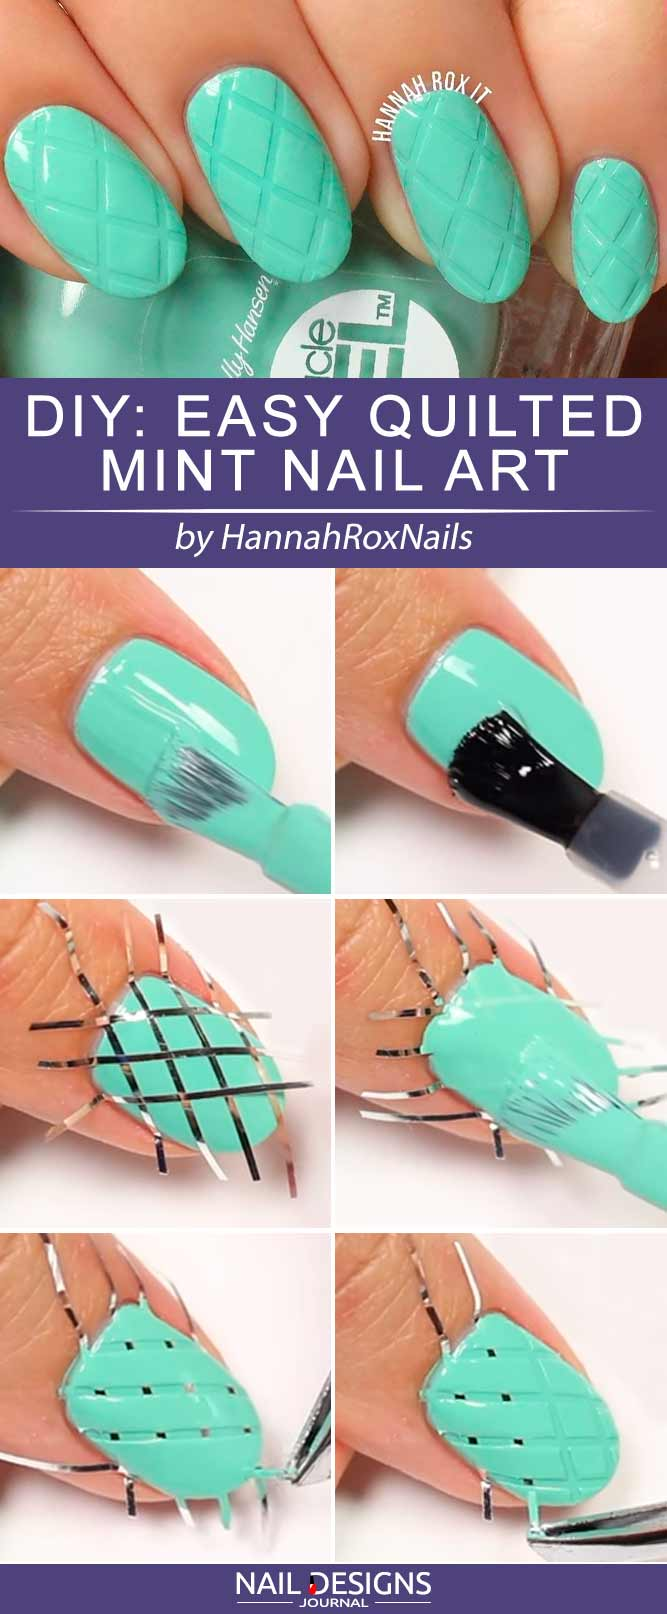 Cute Easy Nail Designs With Quilted Texture